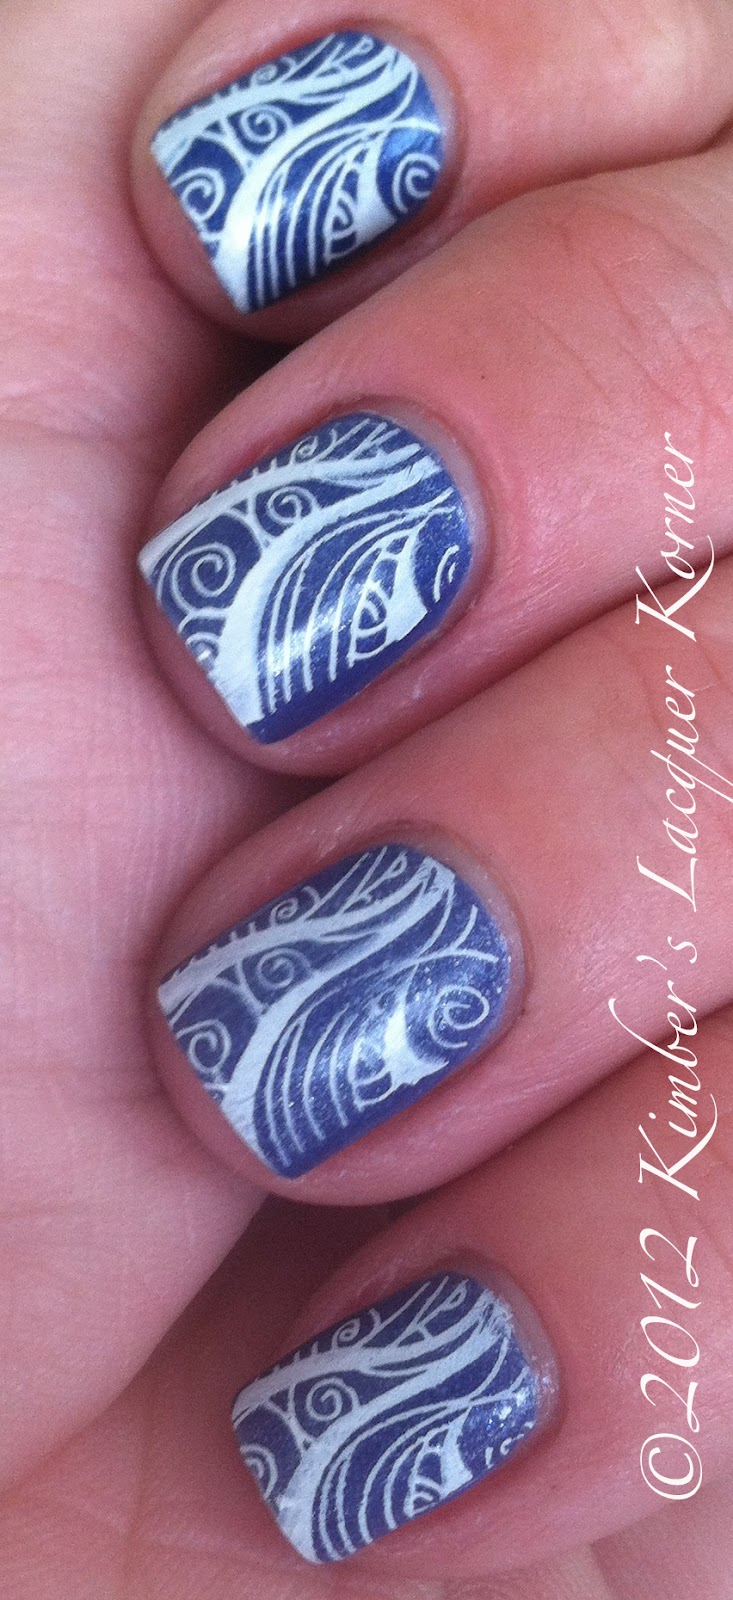 Nail Art Ideas Best Nail Art Stamping Kit Pictures Of Nail Art